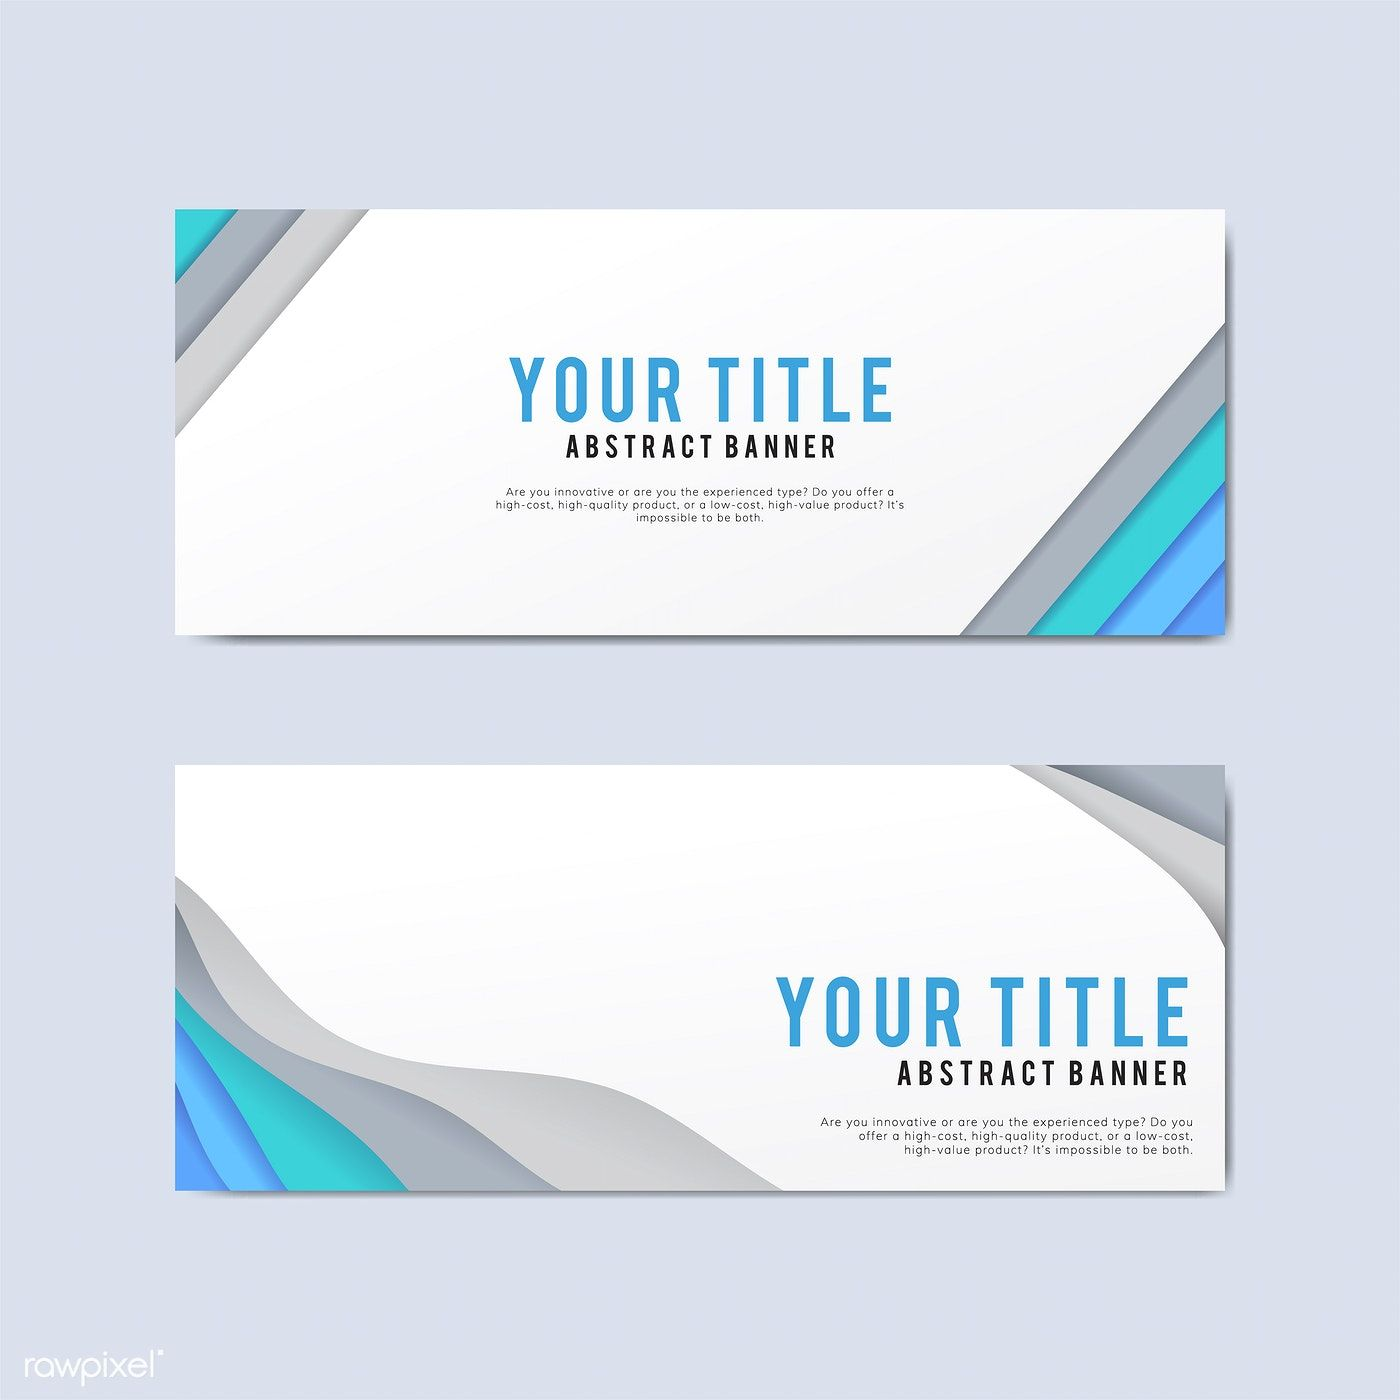 Colorful And Abstract Banner Design Templates Free Image By Rawpixel Com